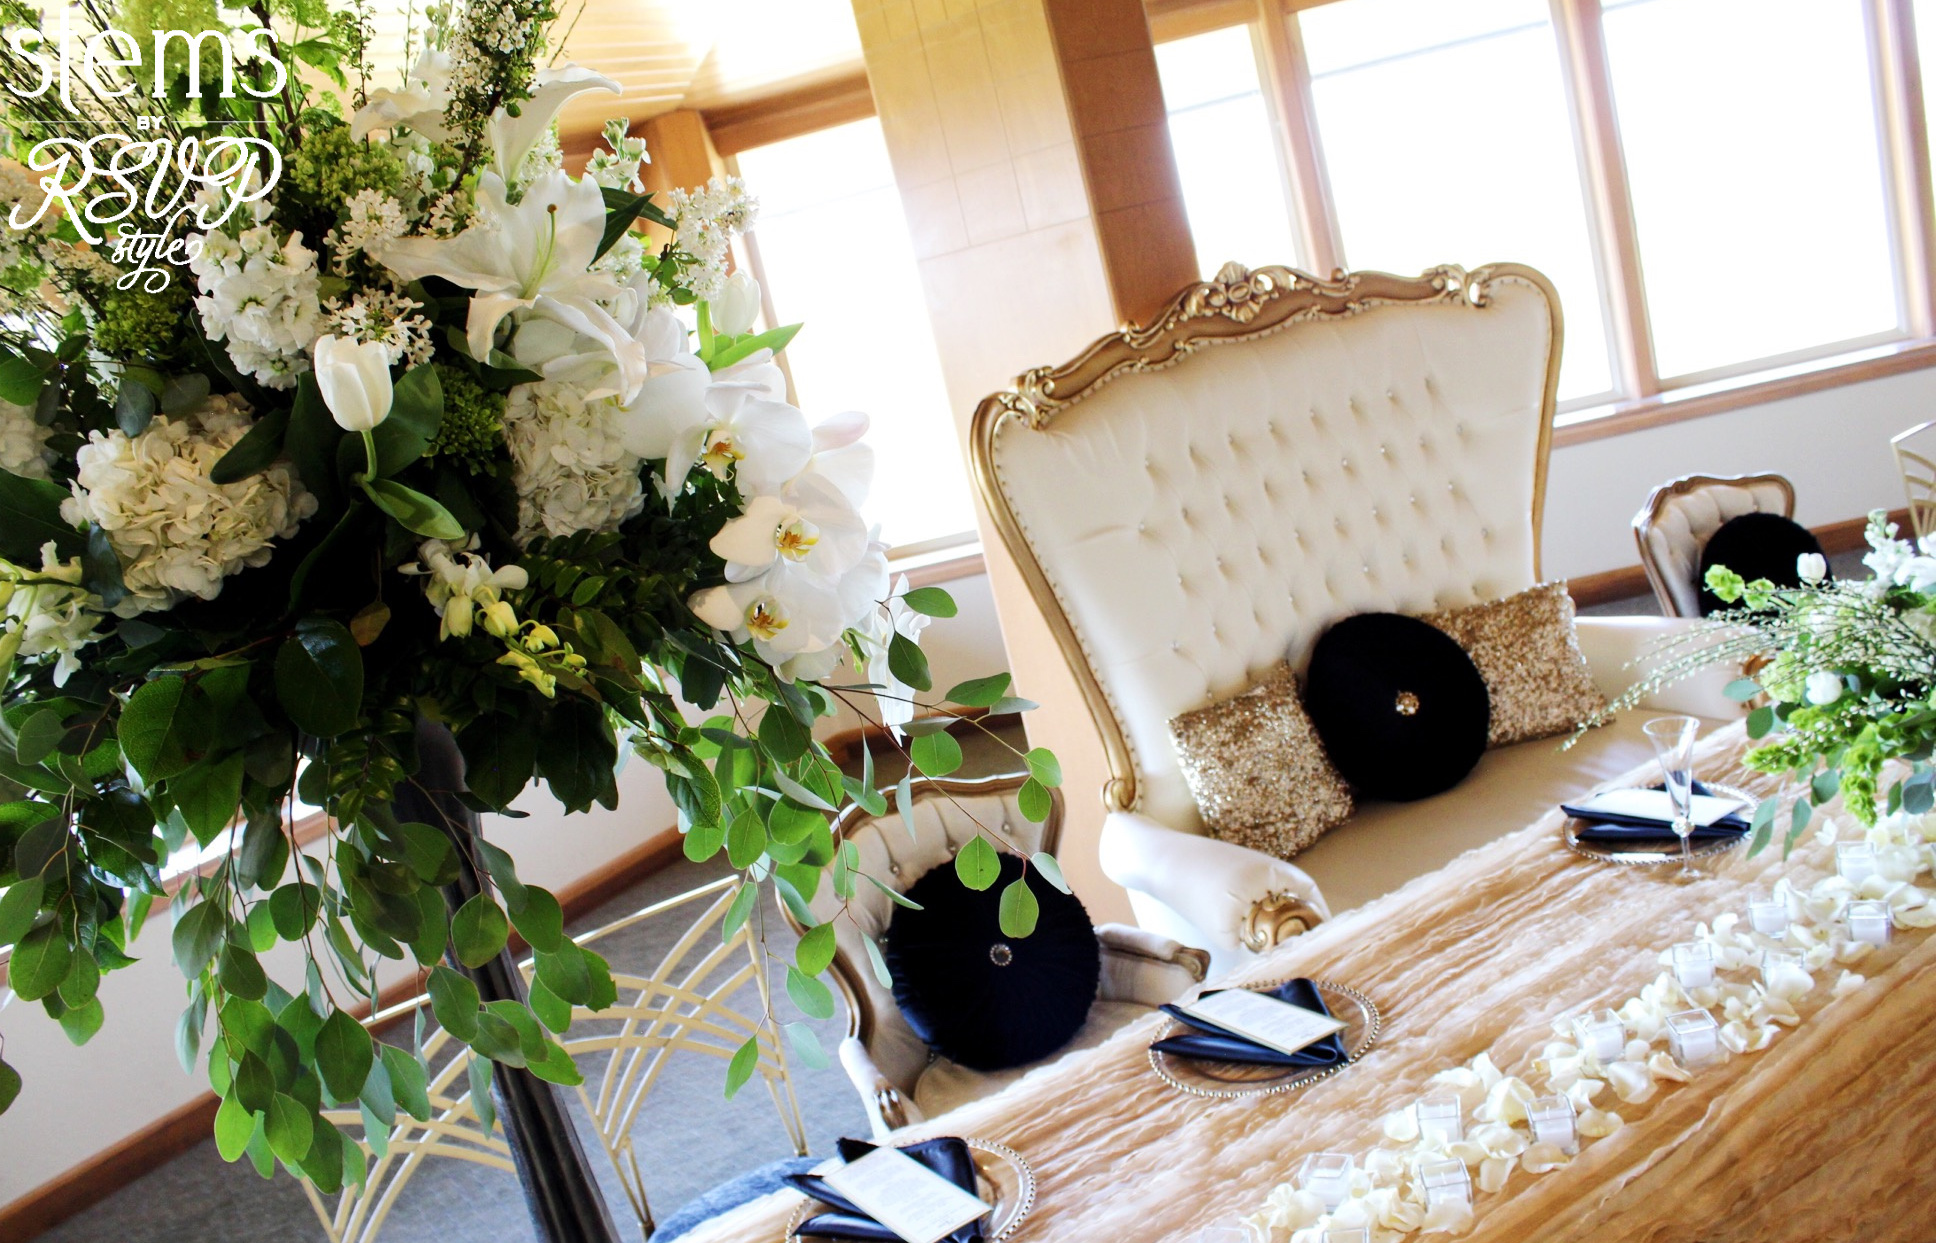 Sweetheart Settee for the Bride & Groom along with seats & settings for the Bridal Party!